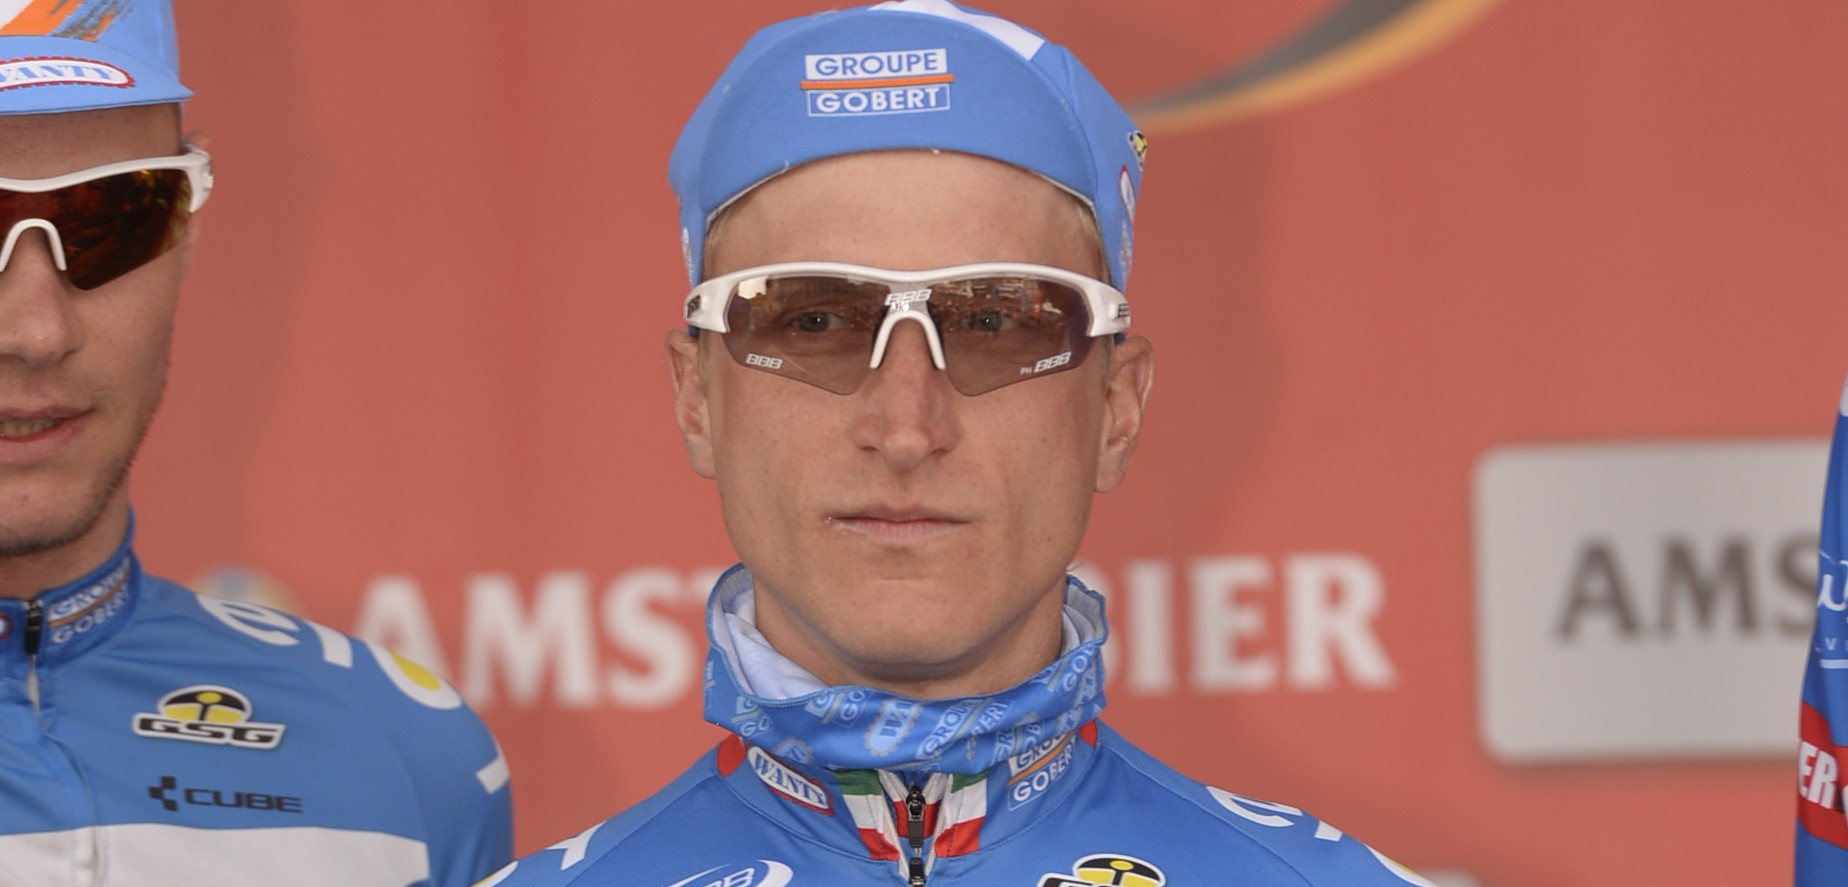 2015, Amstel Gold Race, Wanty - Groupe Gobert 2015, Gasparotto Enrico, Maastricht